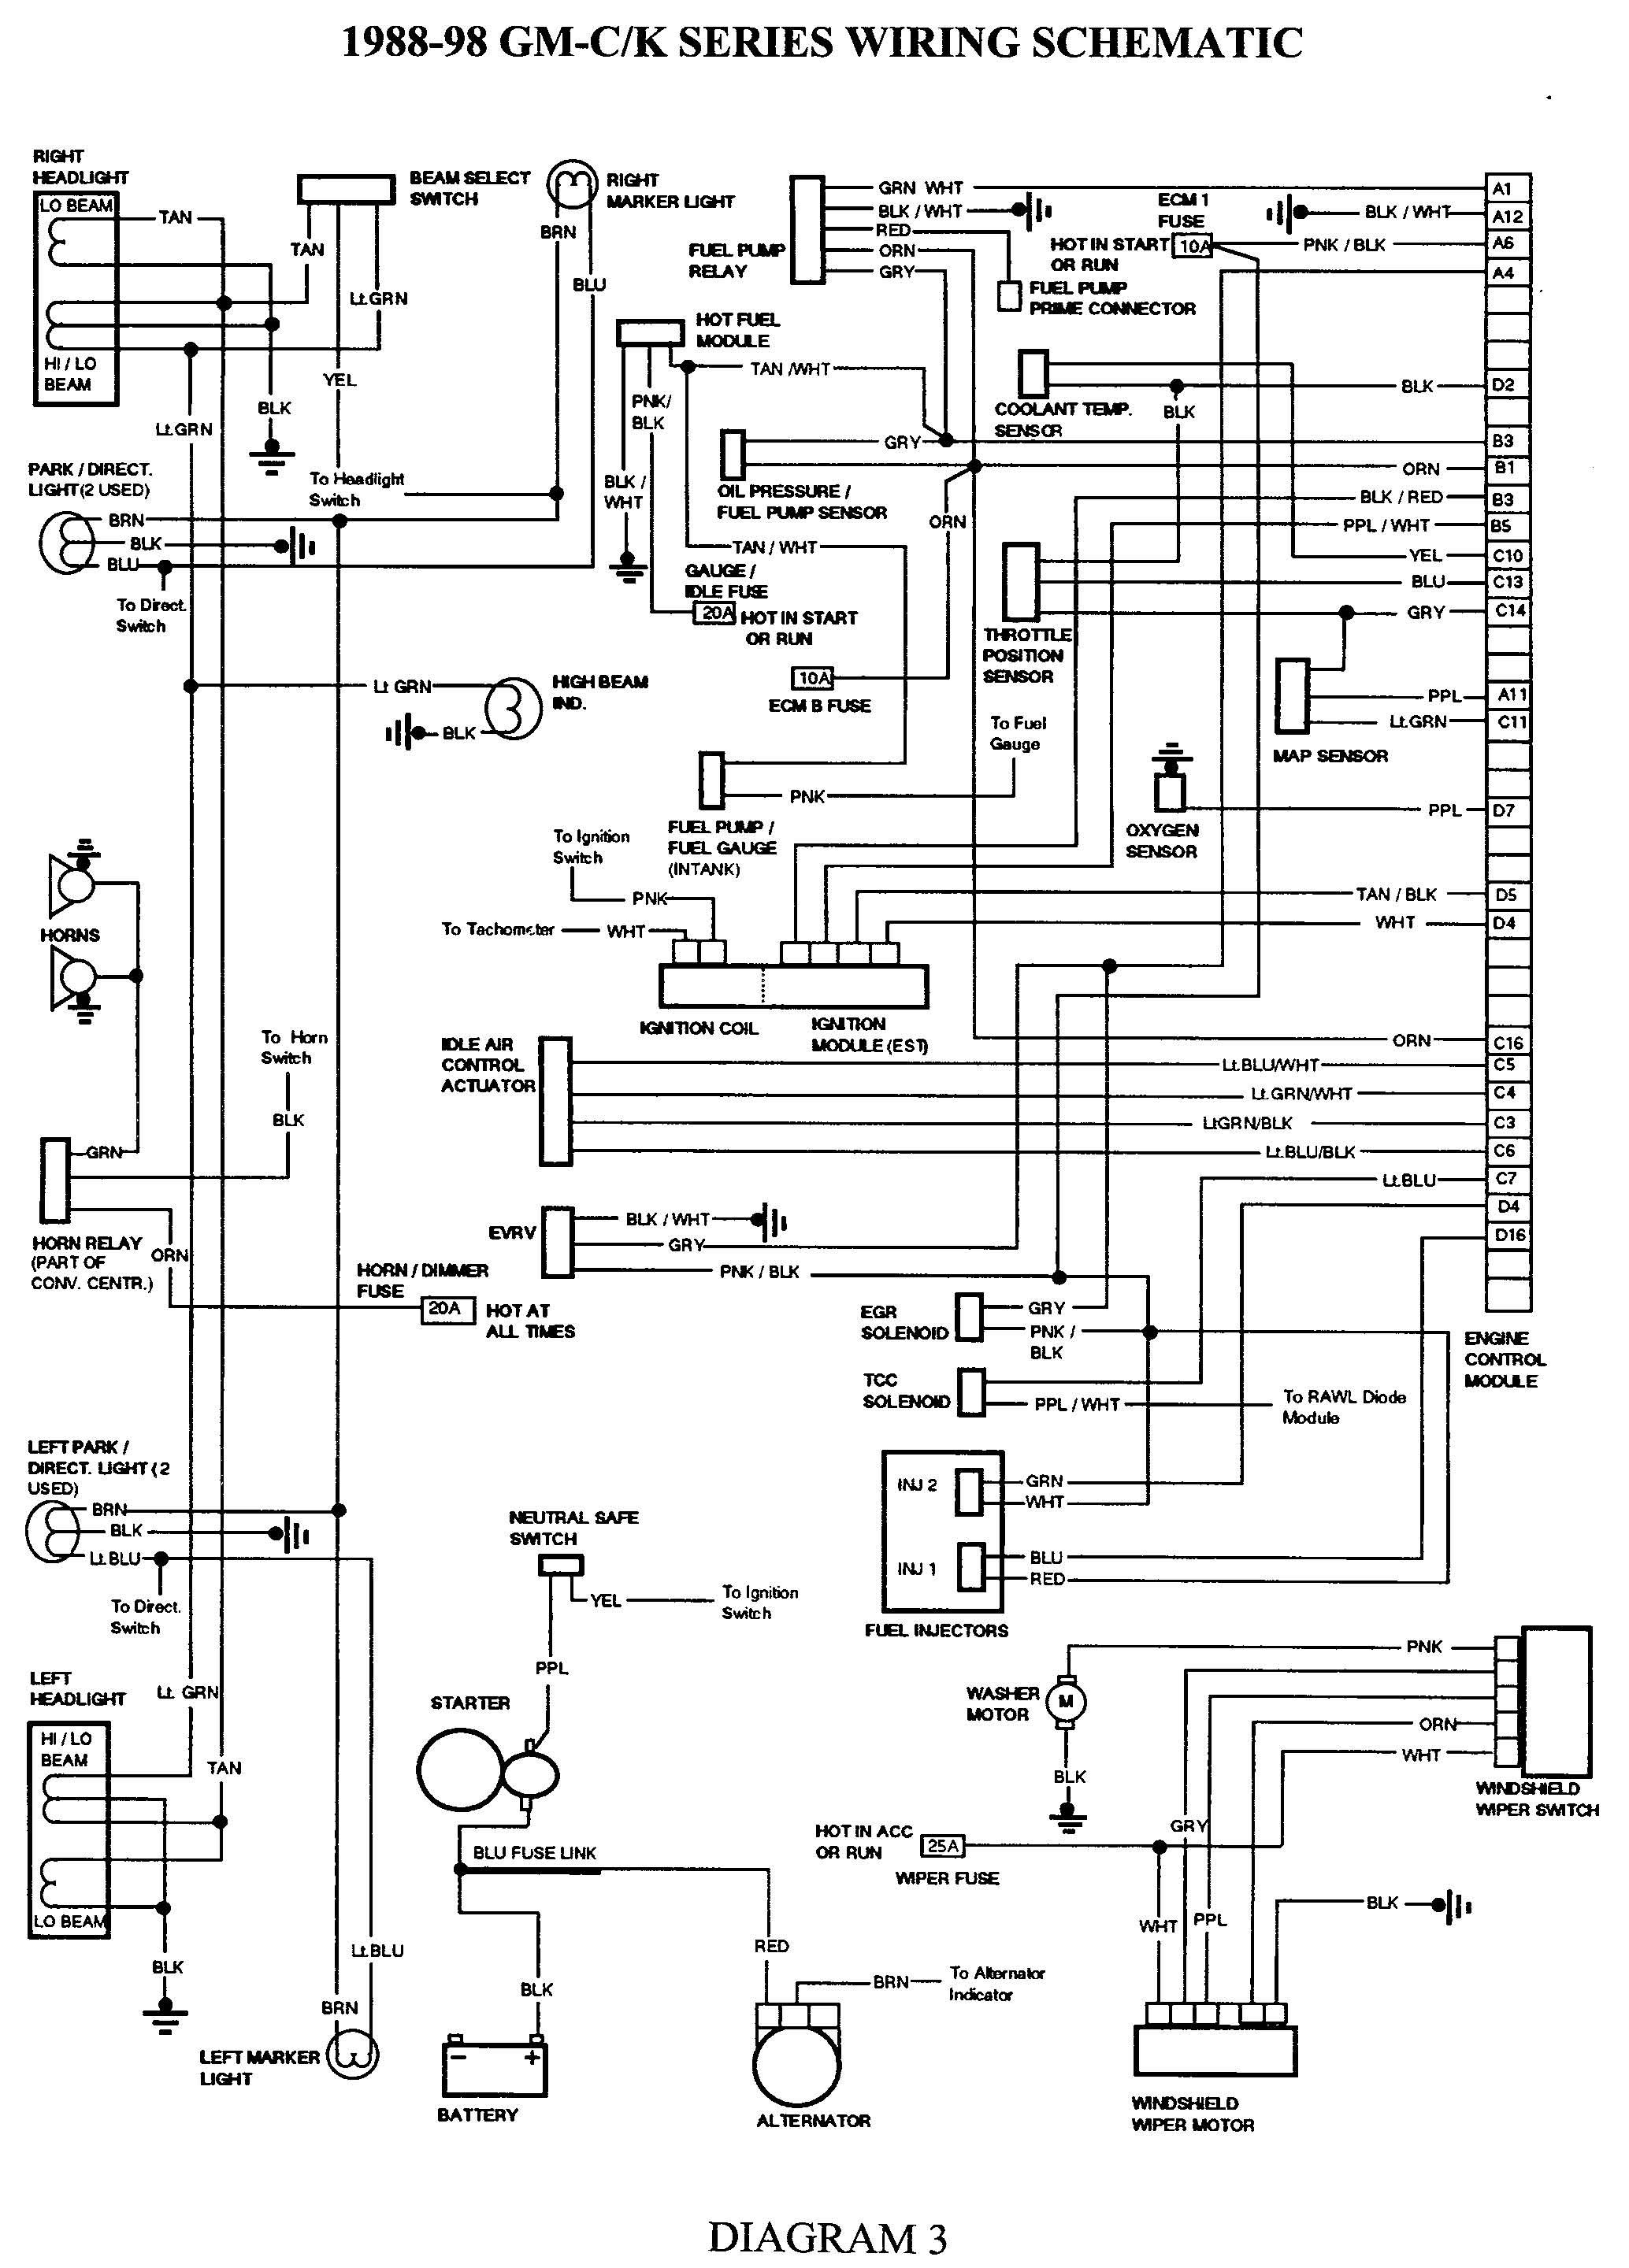 1988 Gmc 7000 Truck Starter Wiring Diagram Detailed Schematics Diagram Dodge  Truck Fuse 76 Dodge Truck Wiring Harness